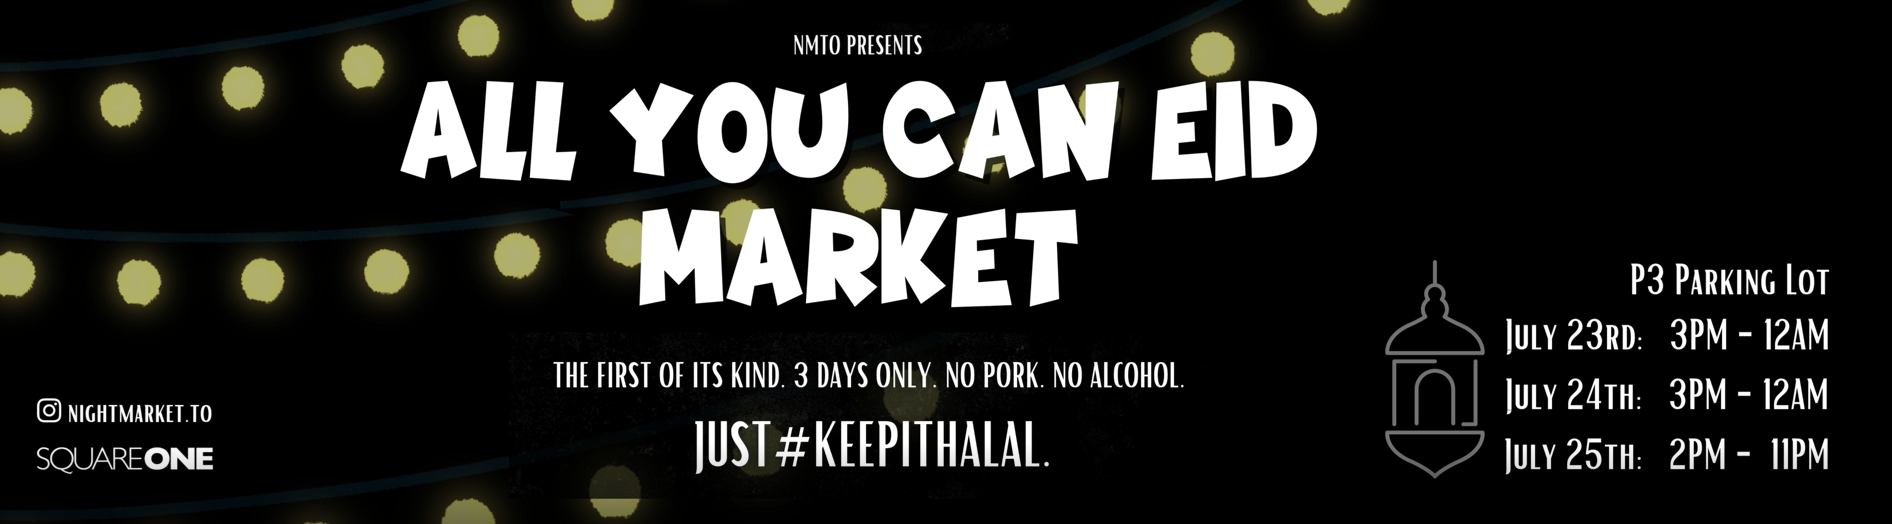 All You Can Eid Night Market